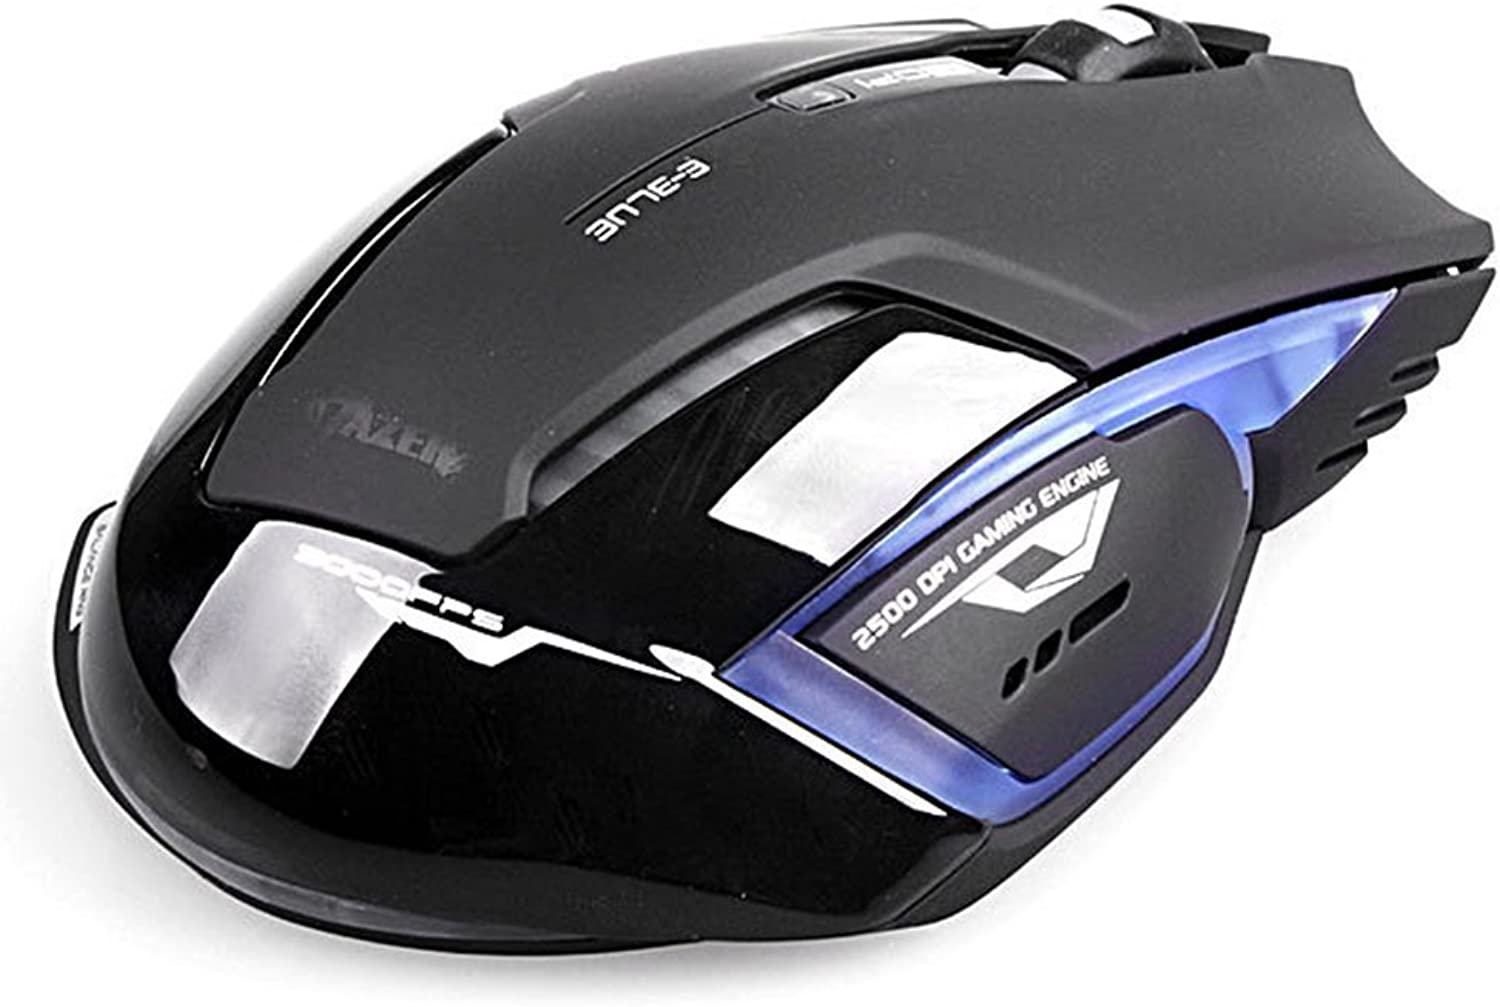 Heng Heng  E3lue 6D Mazer II 2.4GHz Wireless Game Gaming Mouse 2500DPI blueee LED  HNGBG000130